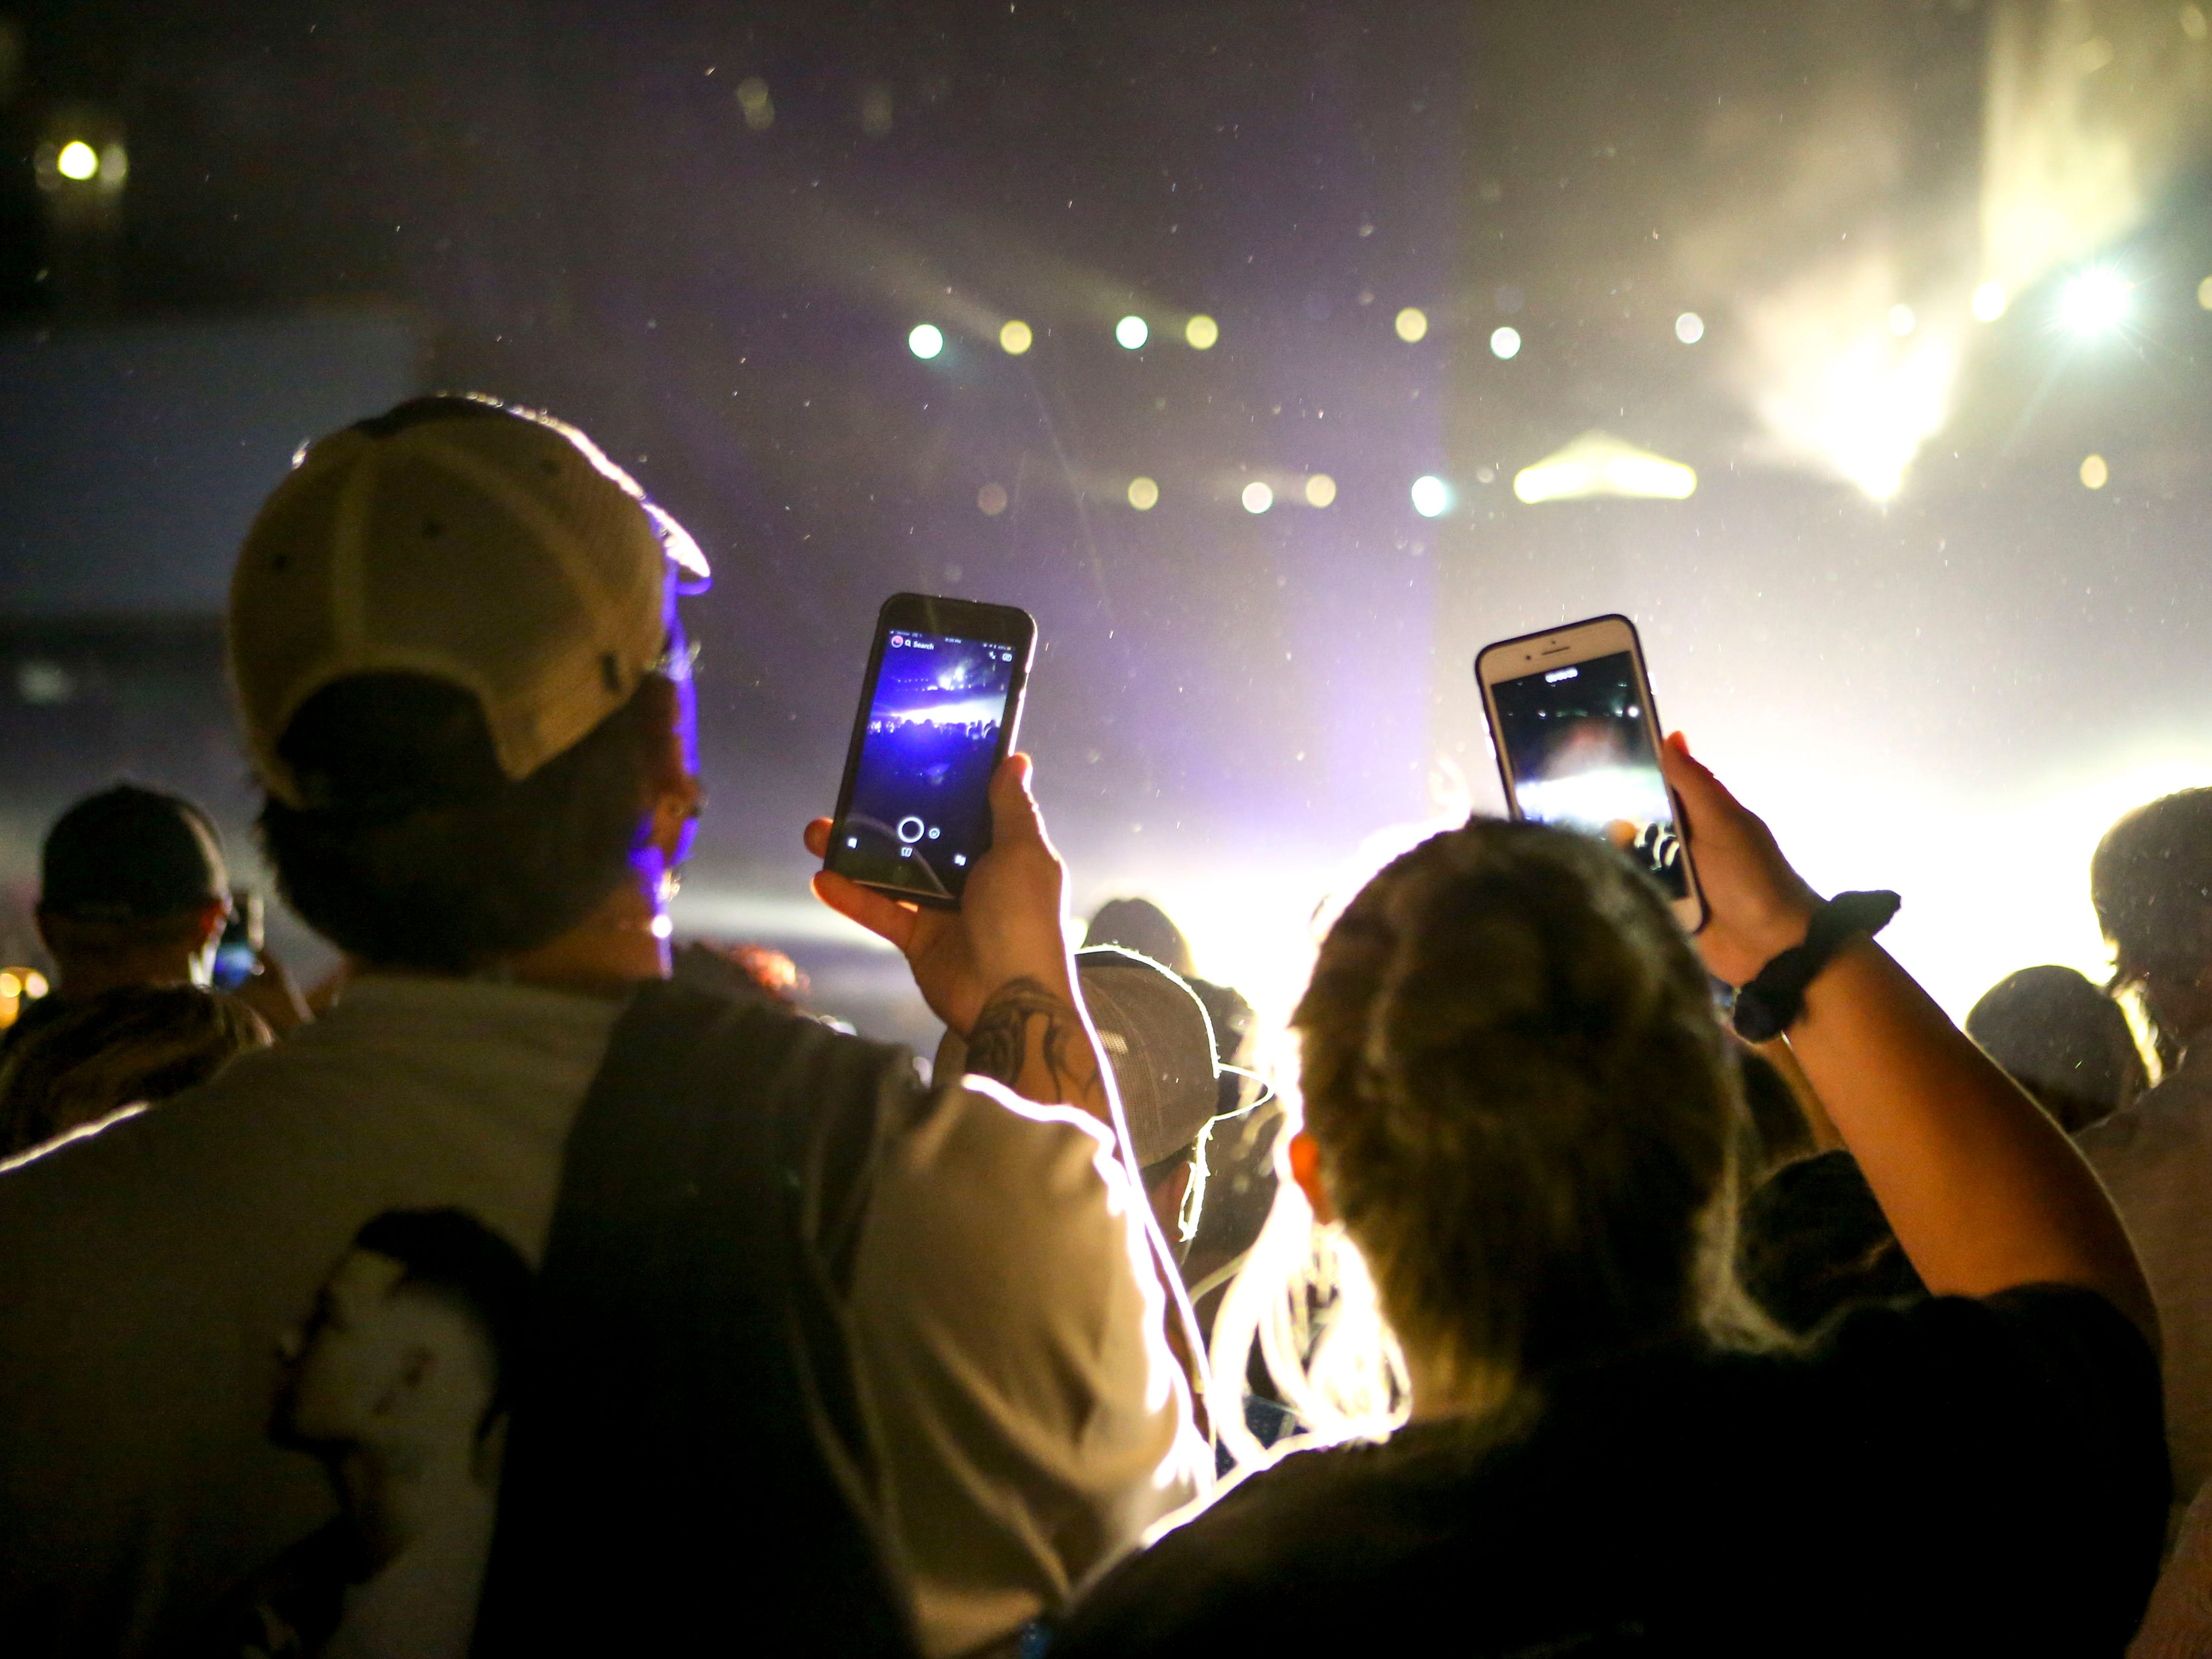 Fans wearing Kane Brown t-shirts take video and photo with their phones while Kane Brown performs as an opening act for Chris Young at Bridgestone Arena in Nashville, Tenn., Saturday, Sept. 22, 2018.